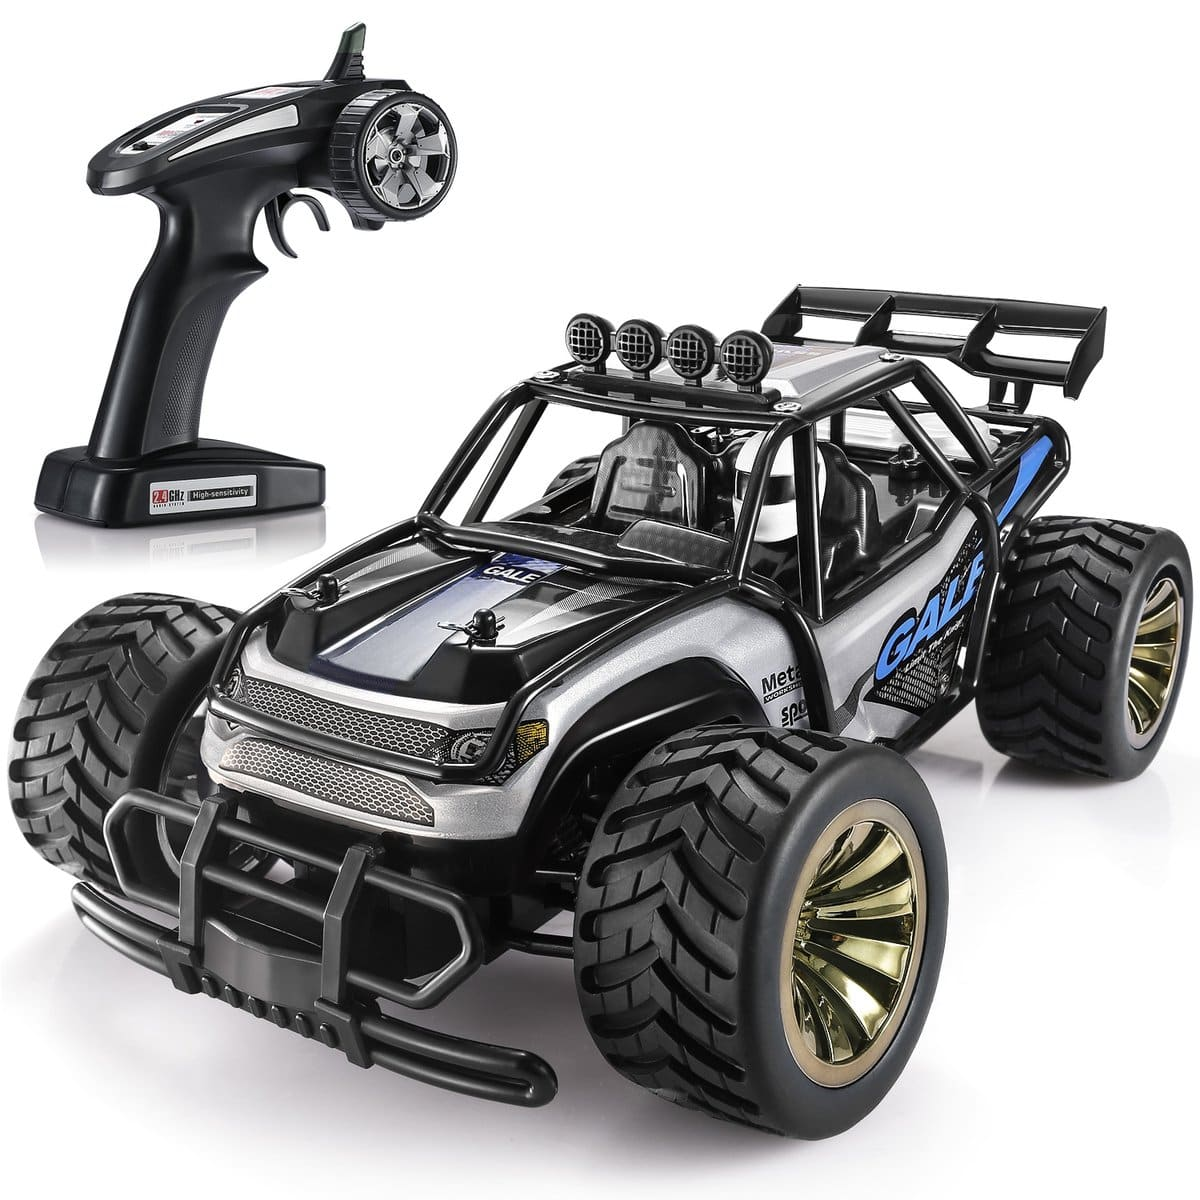 1:16 Large Remote Control Car, Black, $24.08 + FS